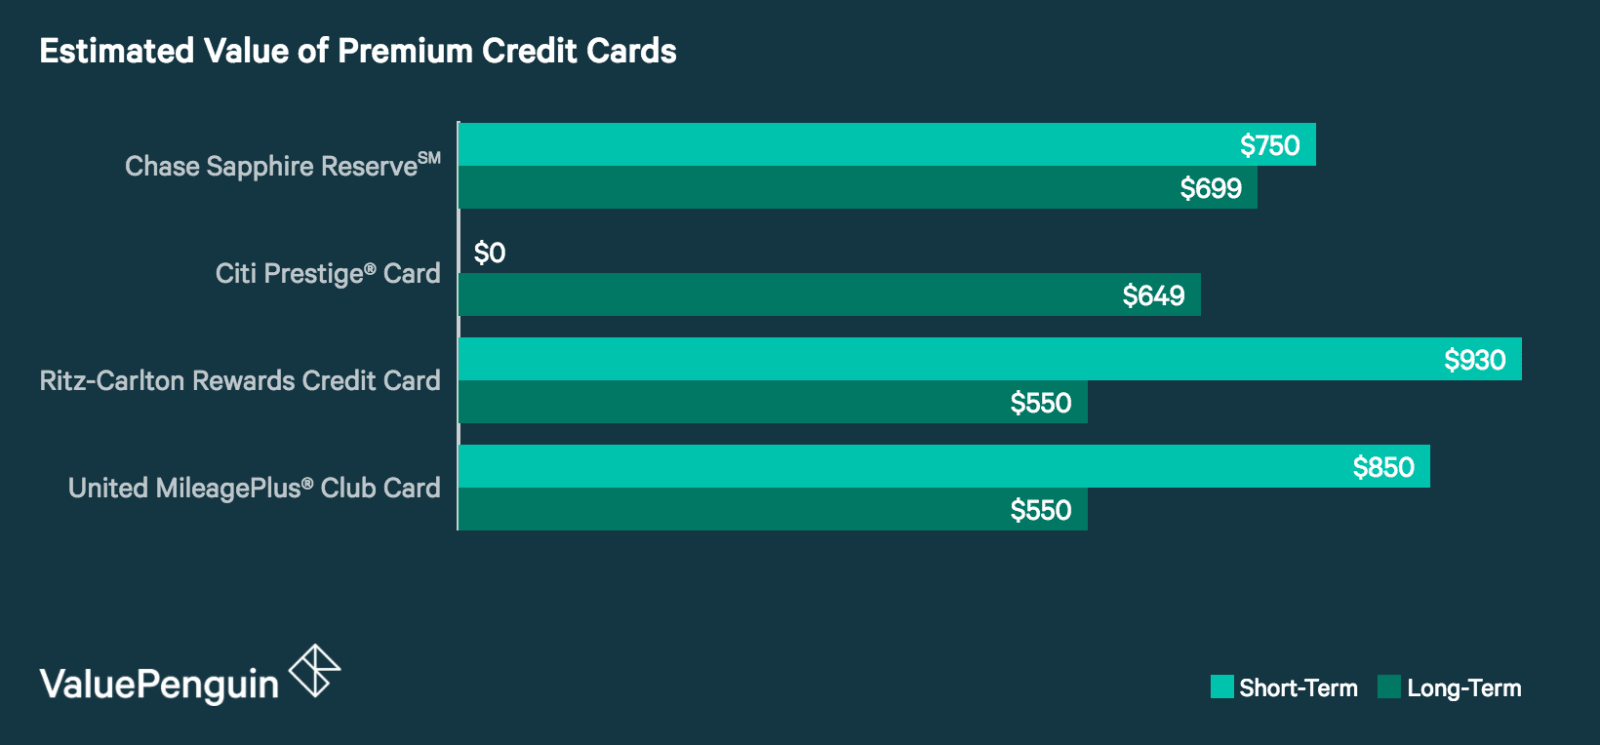 A graph showing the estimated value of the top premium credit cards.